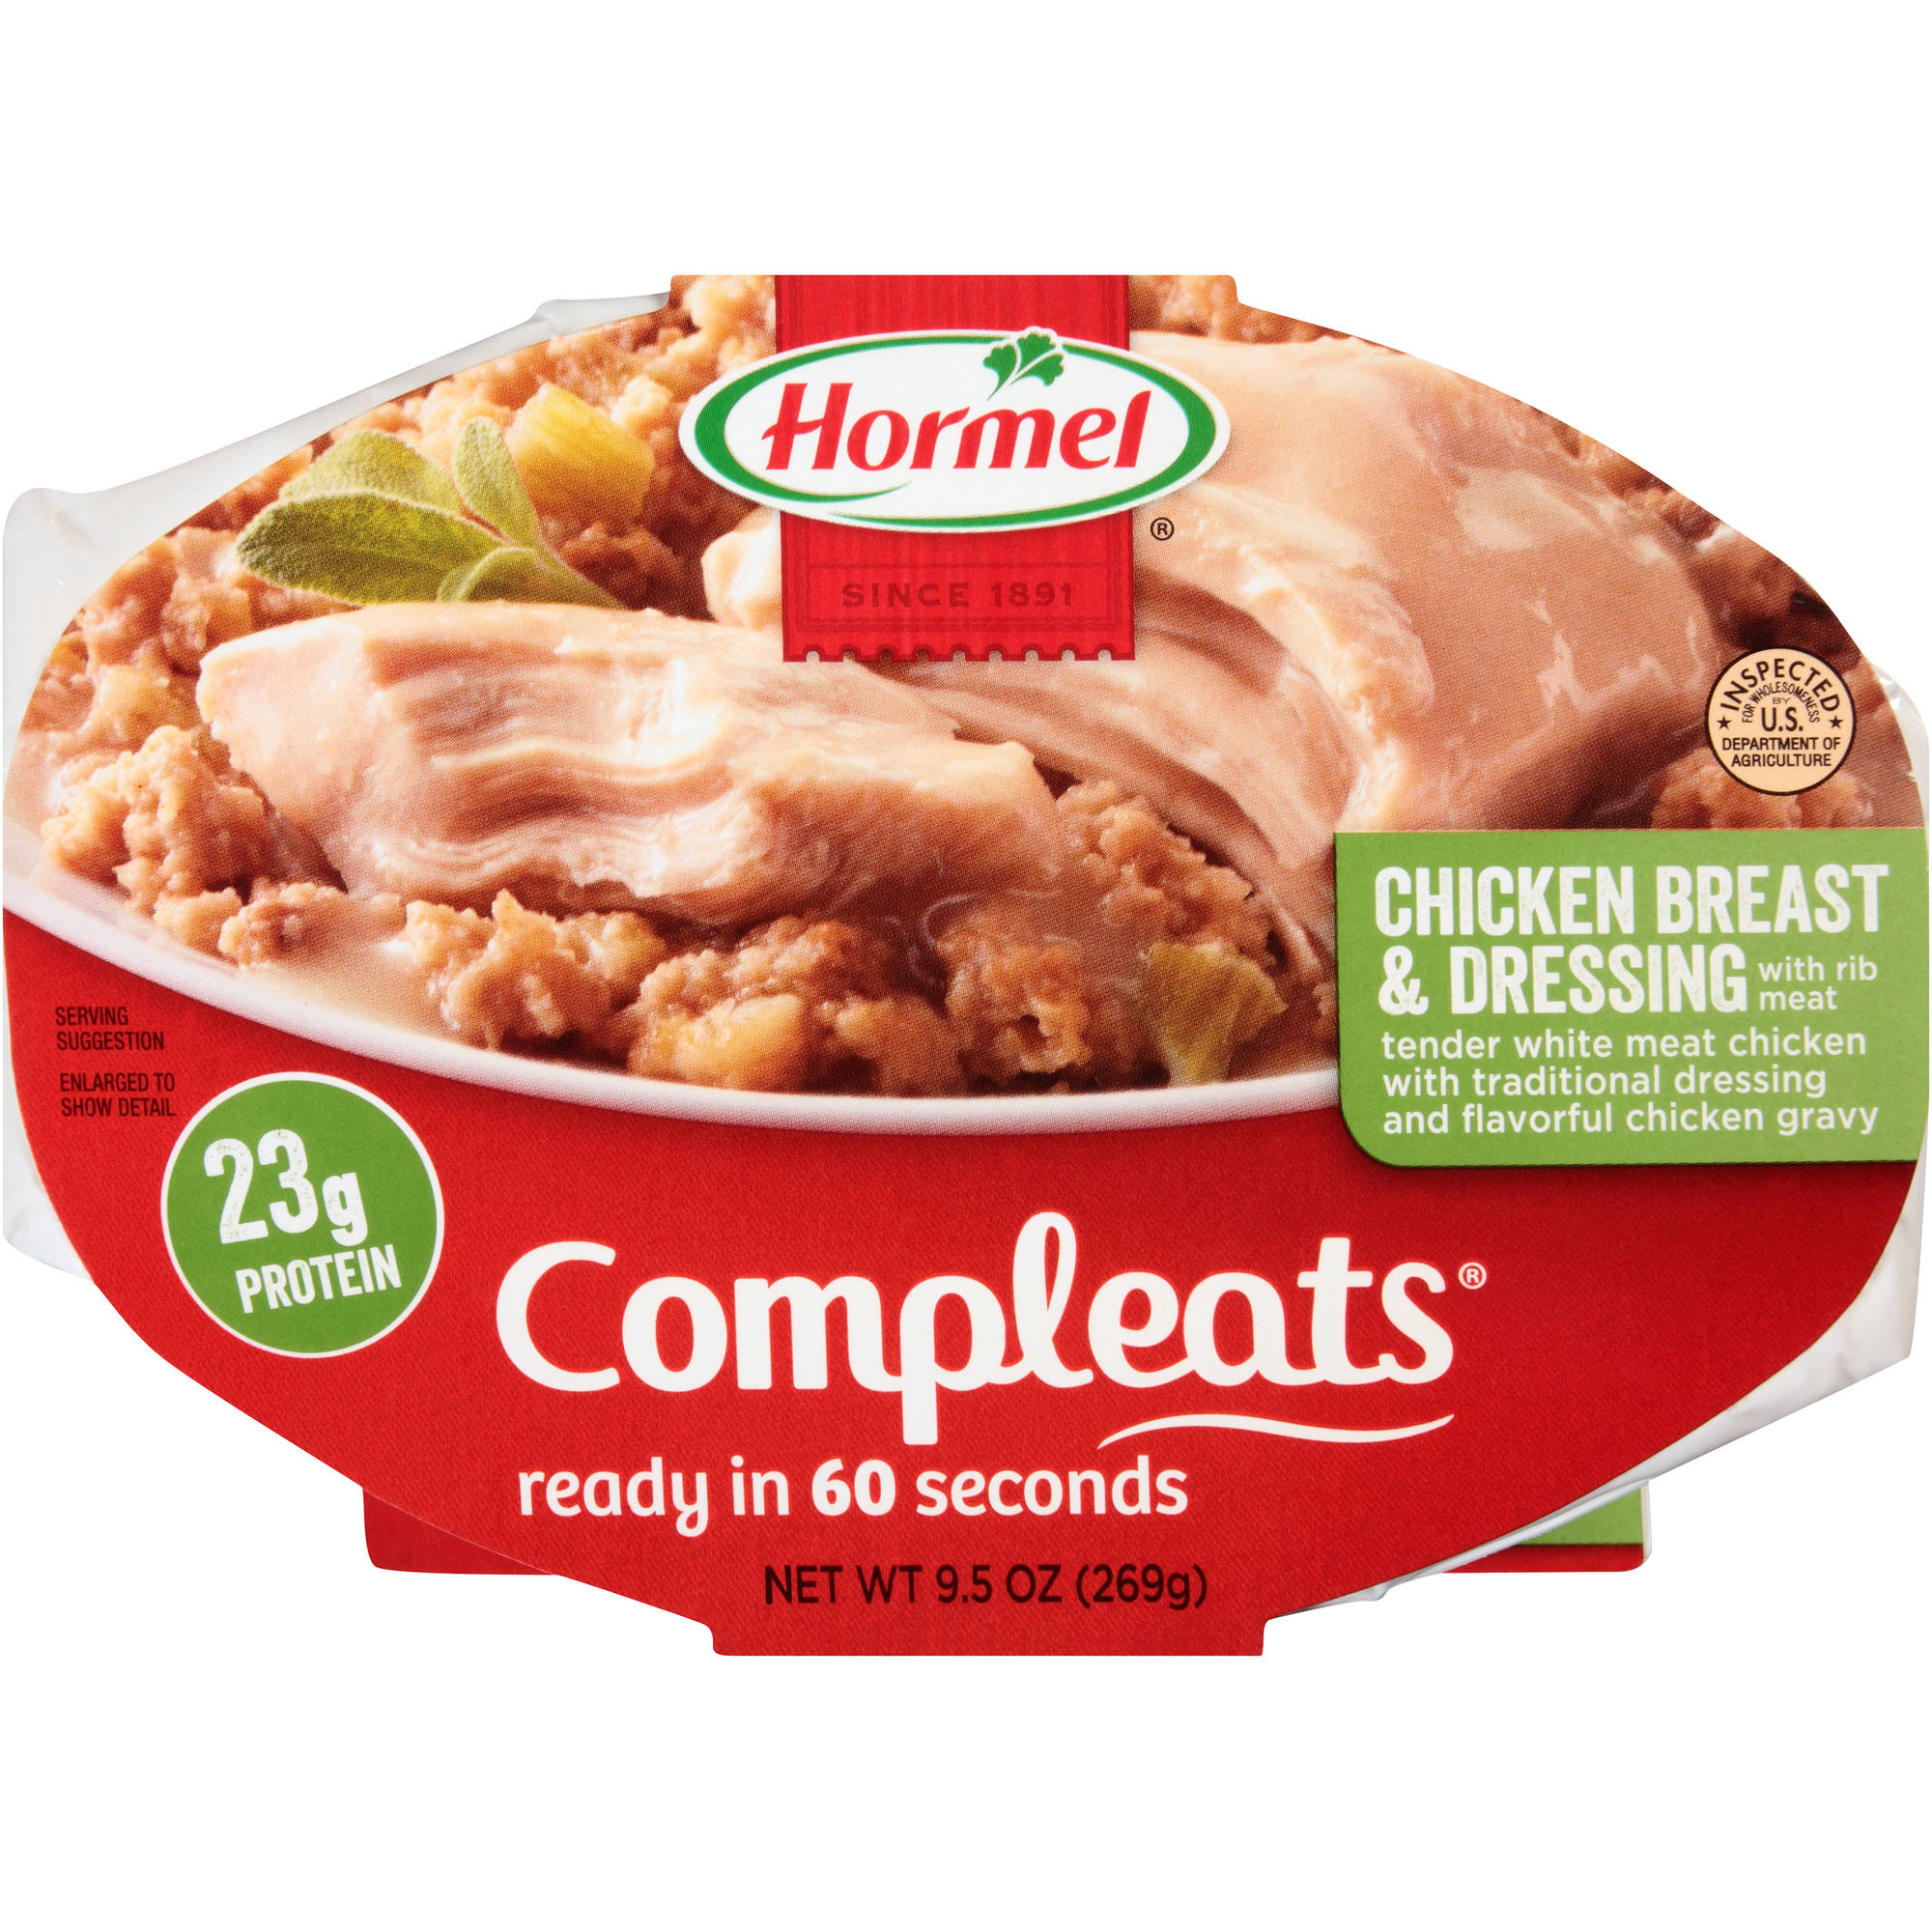 Hormel Compleats Chicken Breast & Dressing, 9.5 oz